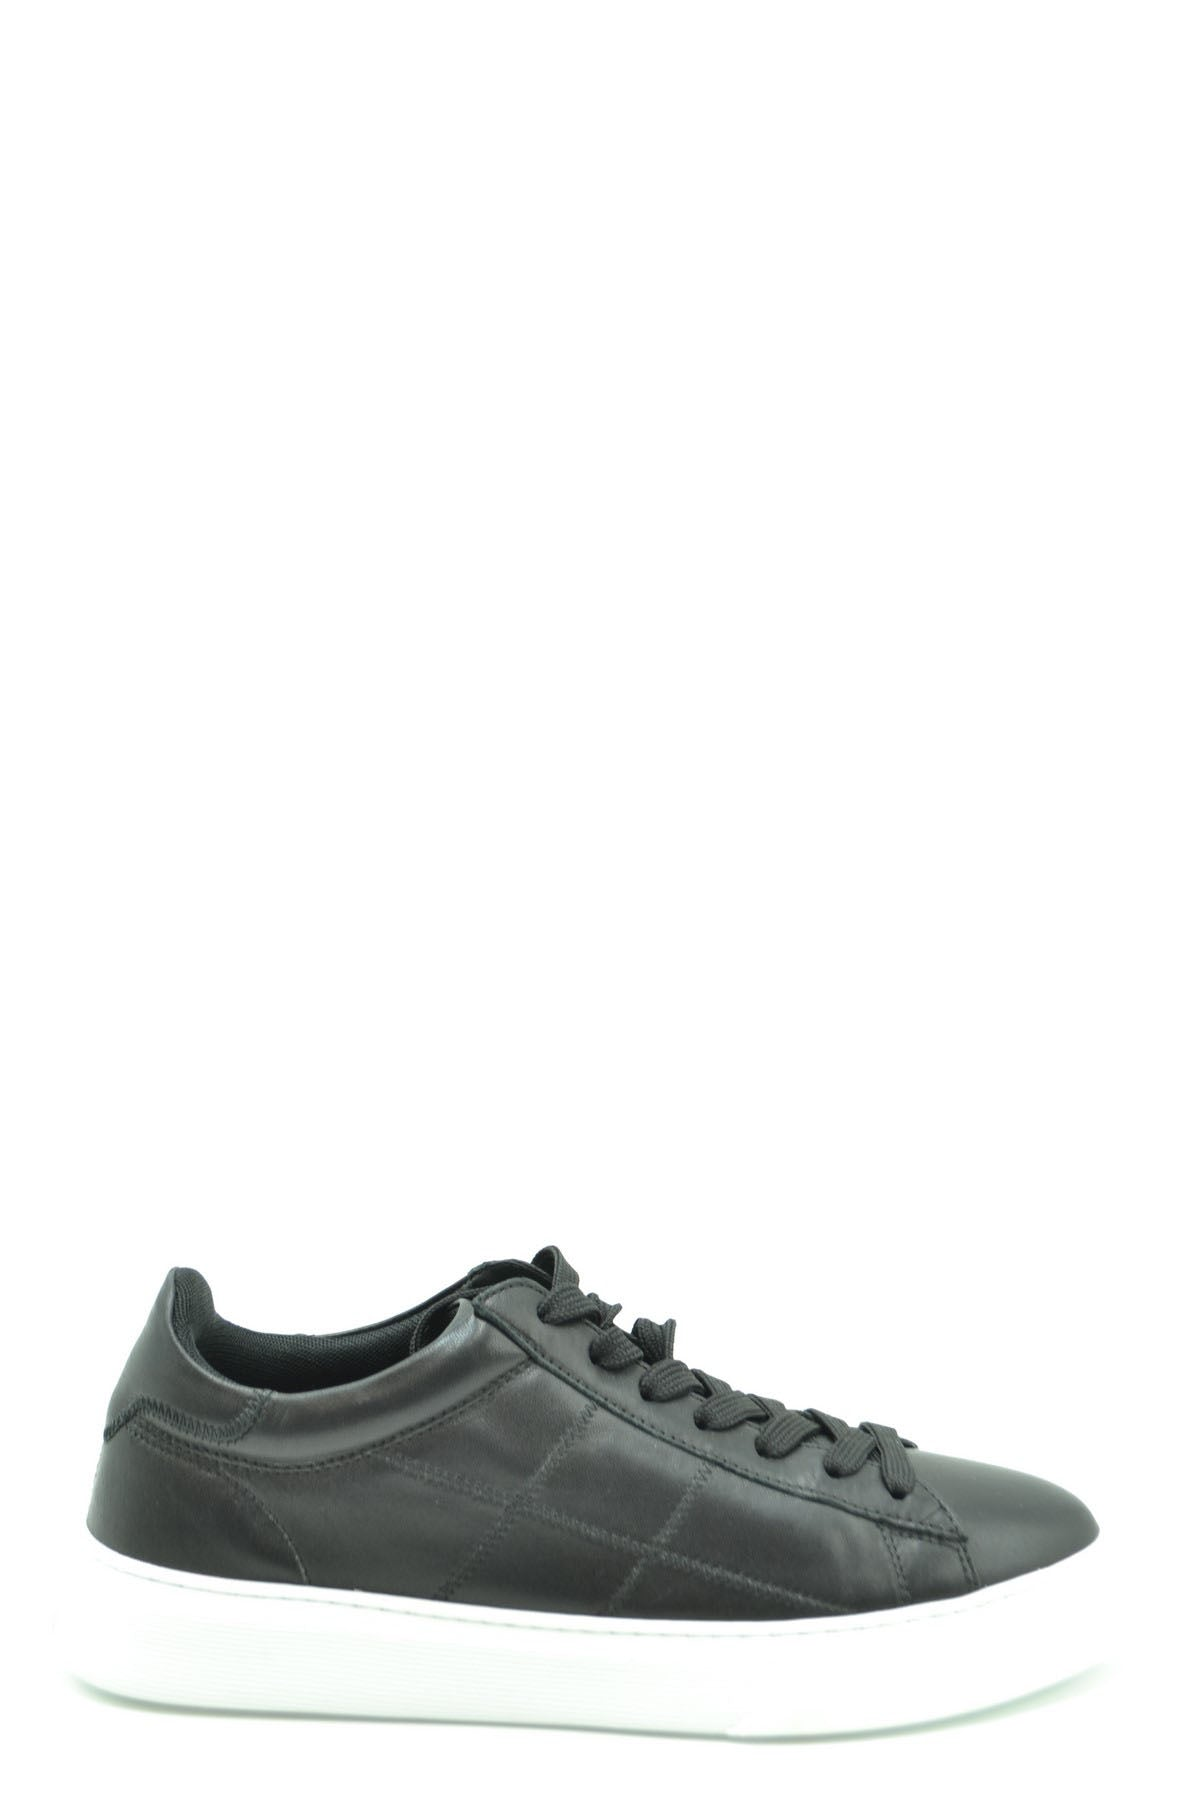 Shoes Hogan-Sports & Entertainment - Sneakers-7-Product Details Manufacturer Part Number: Hxm3650K694Le9B999Year: 2020Composition: Leather 100%Size: UkGender: ManMade In: ItalySeason: Fall / WinterType Of Accessory: ShoesMain Color: BlackTerms: New With Label-Keyomi-Sook